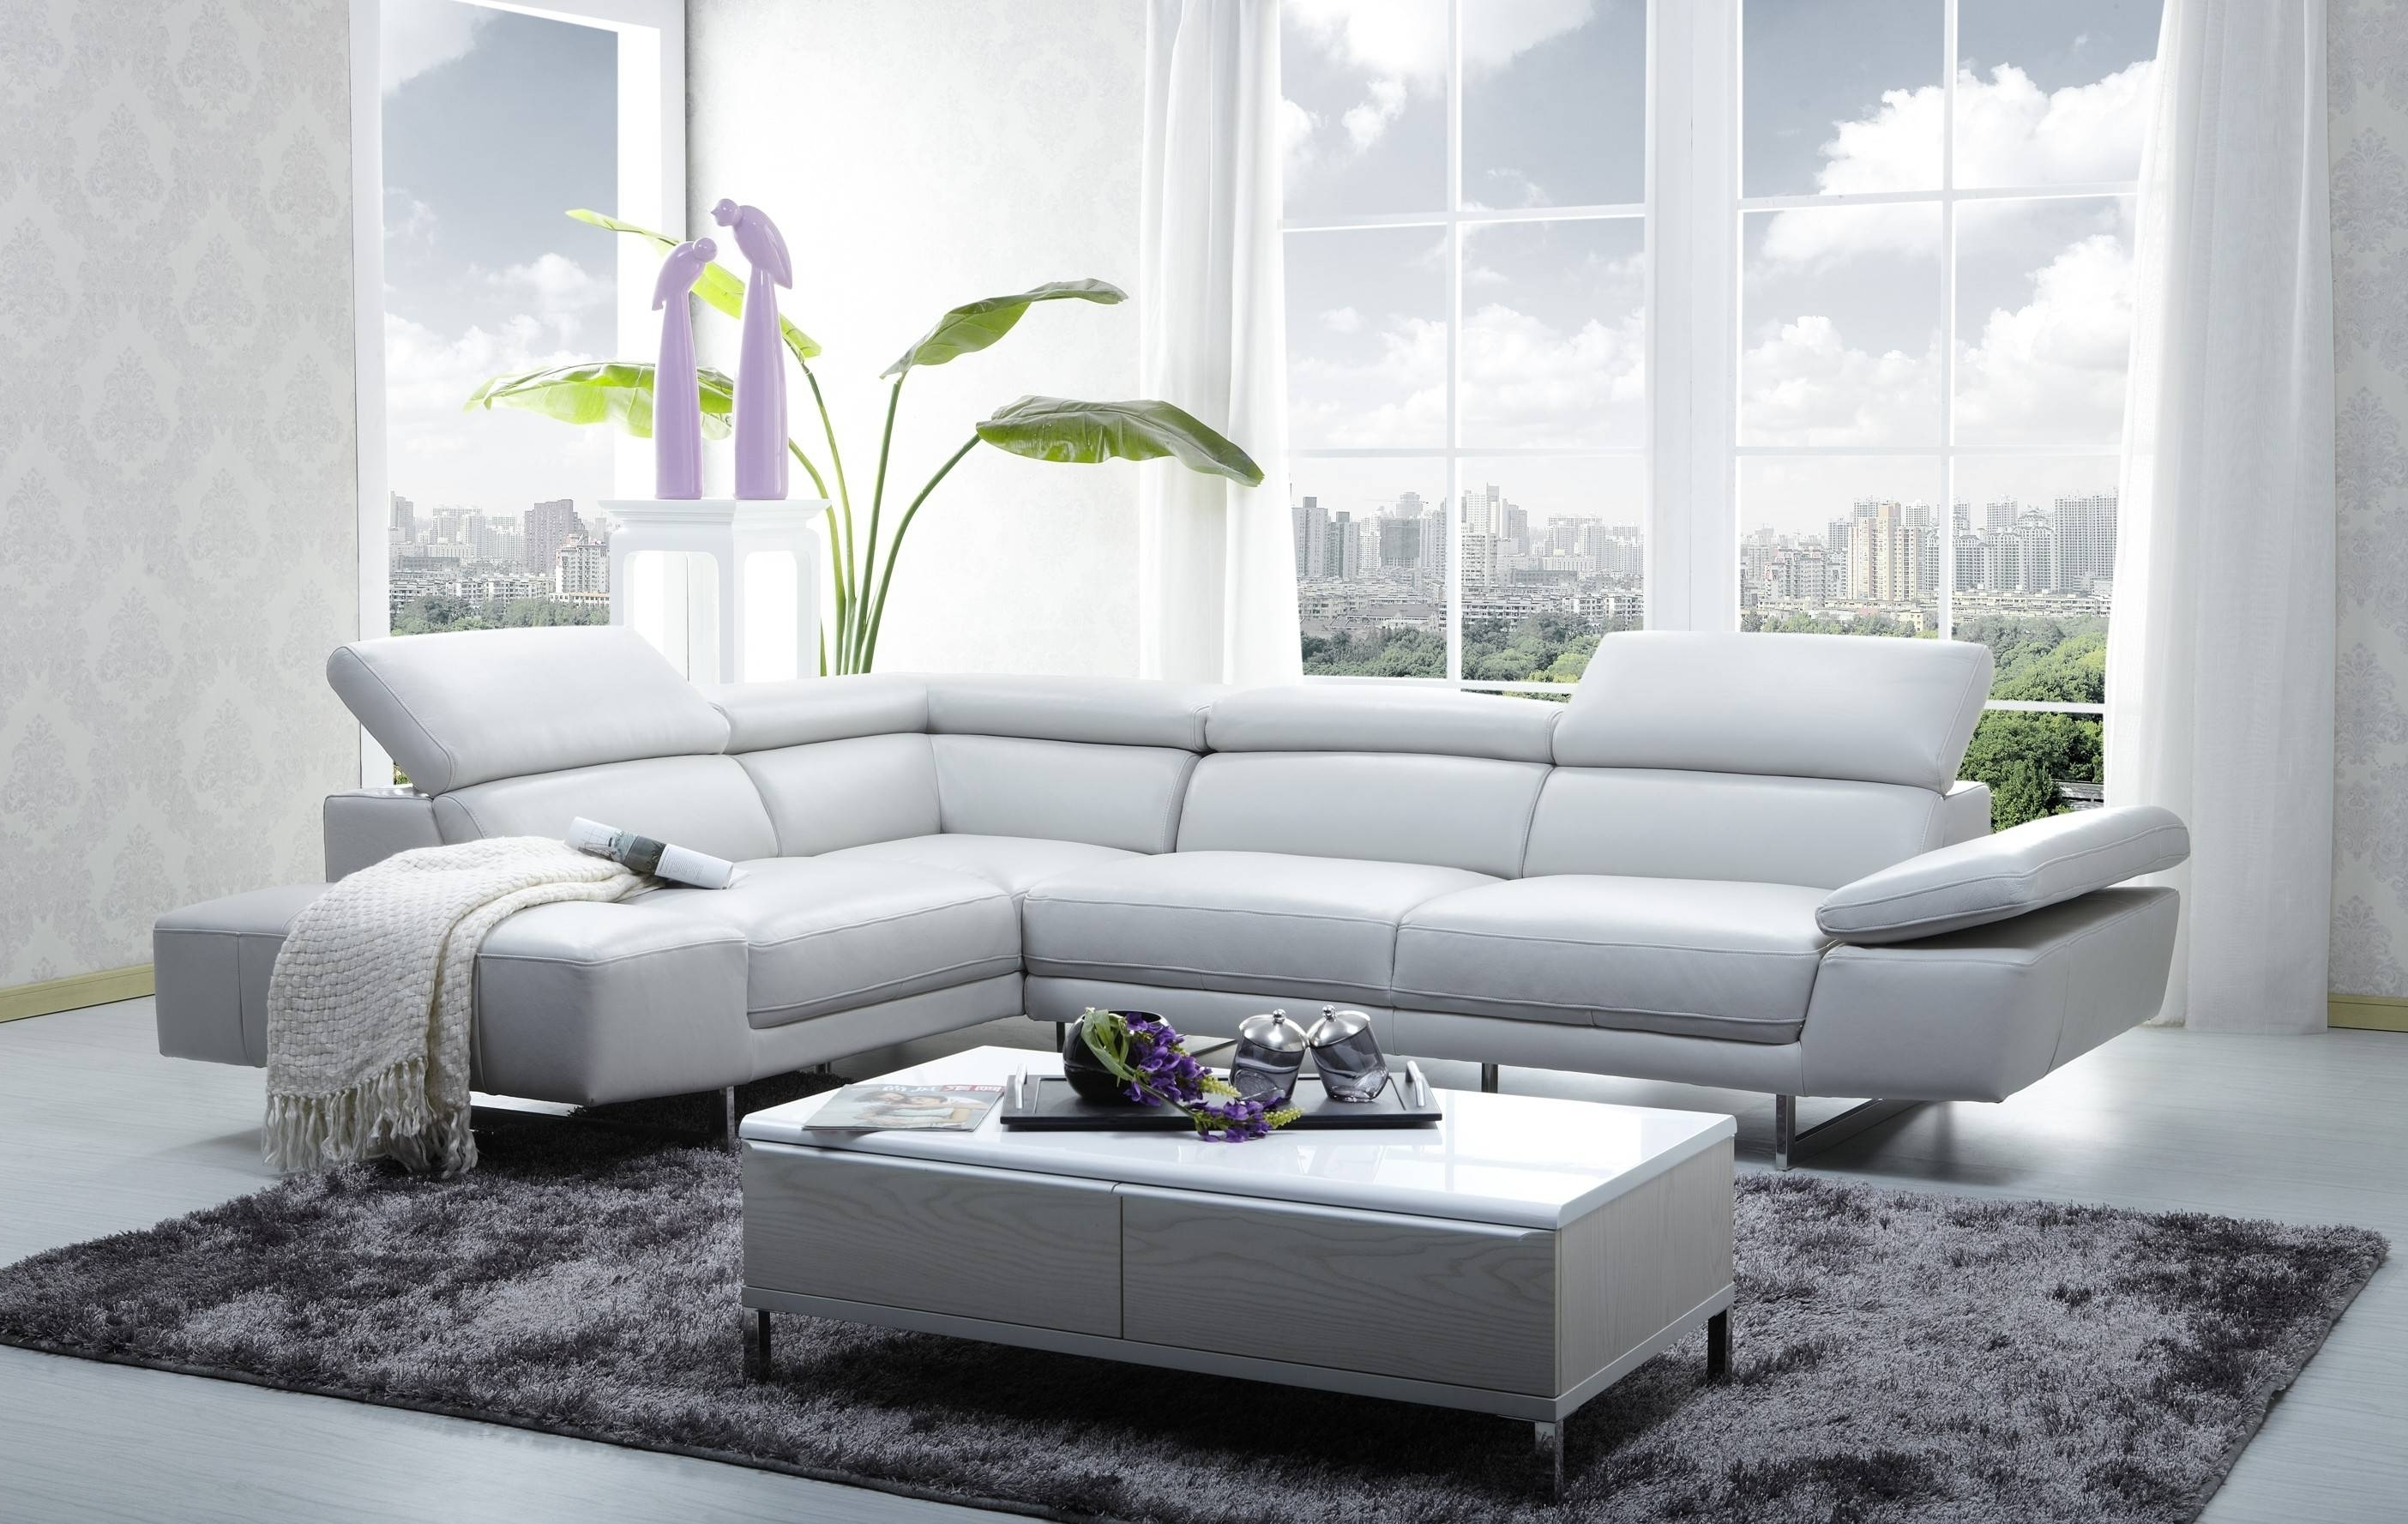 Newest Beautiful Sectional Sofa For Sale (35 Photos) (View 16 of 20)